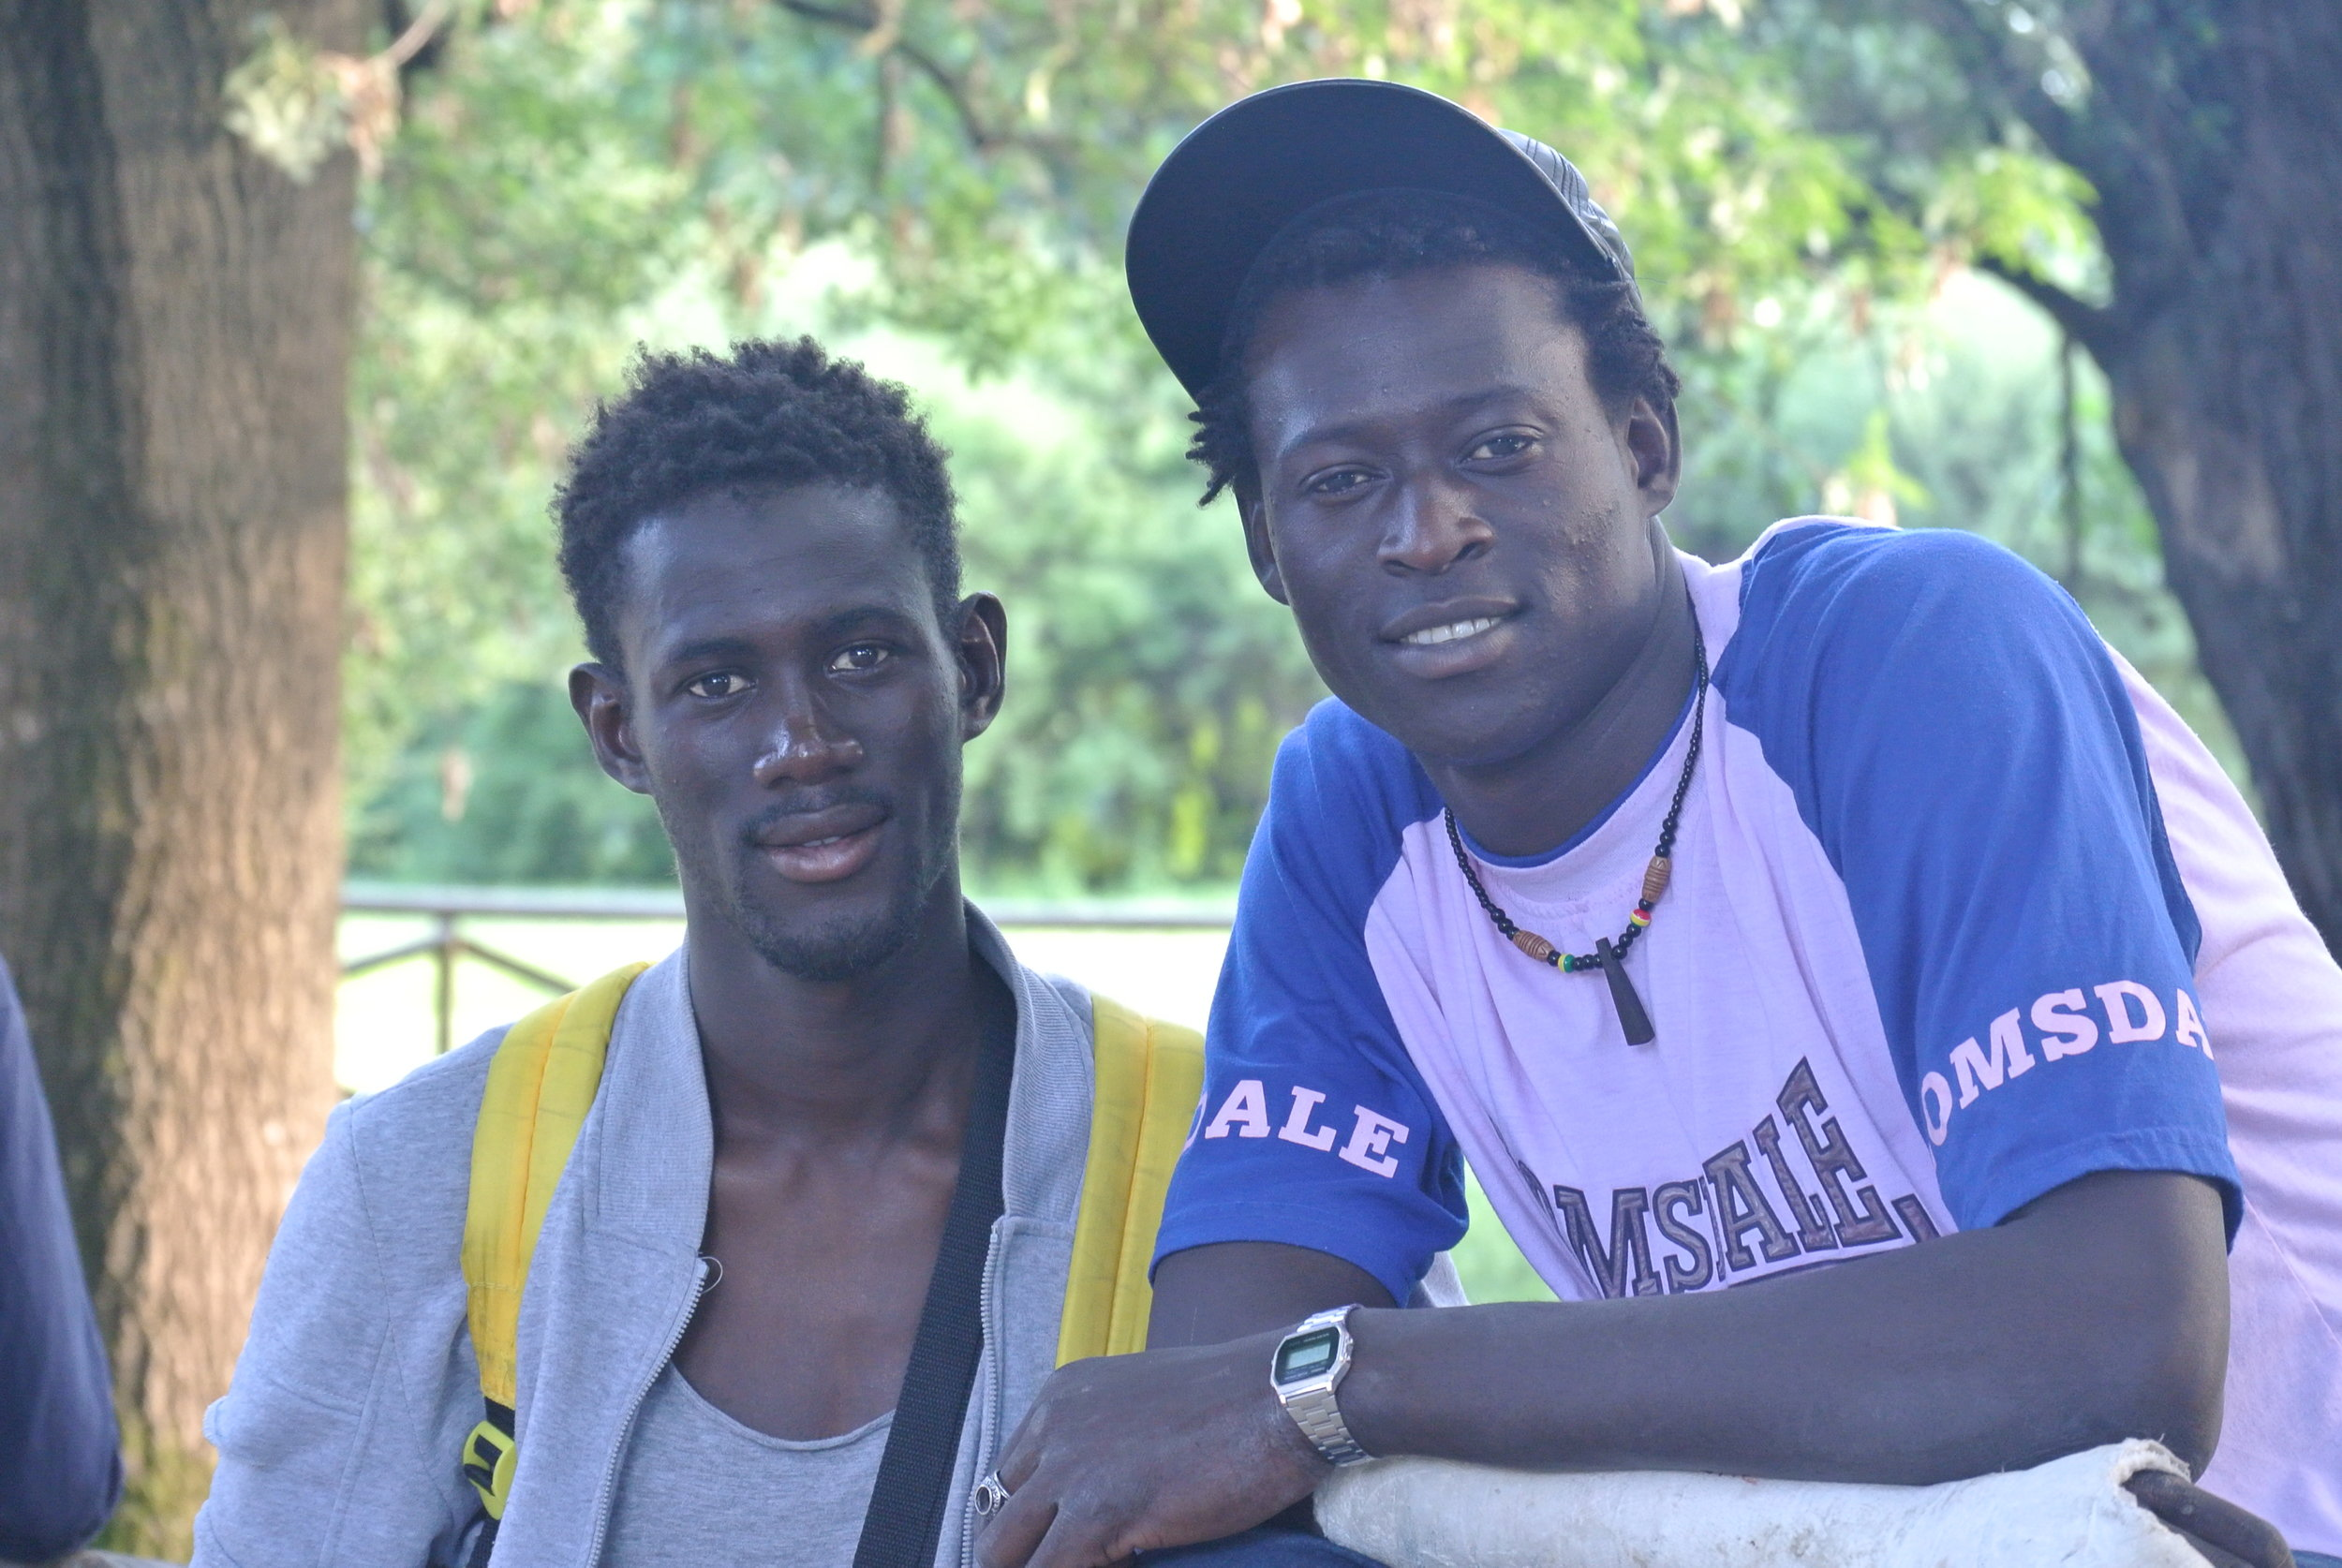 In the park with his friend Ebrima (Gambia). Milan, Italy; June 9, 2018. © Pamela Kerpius